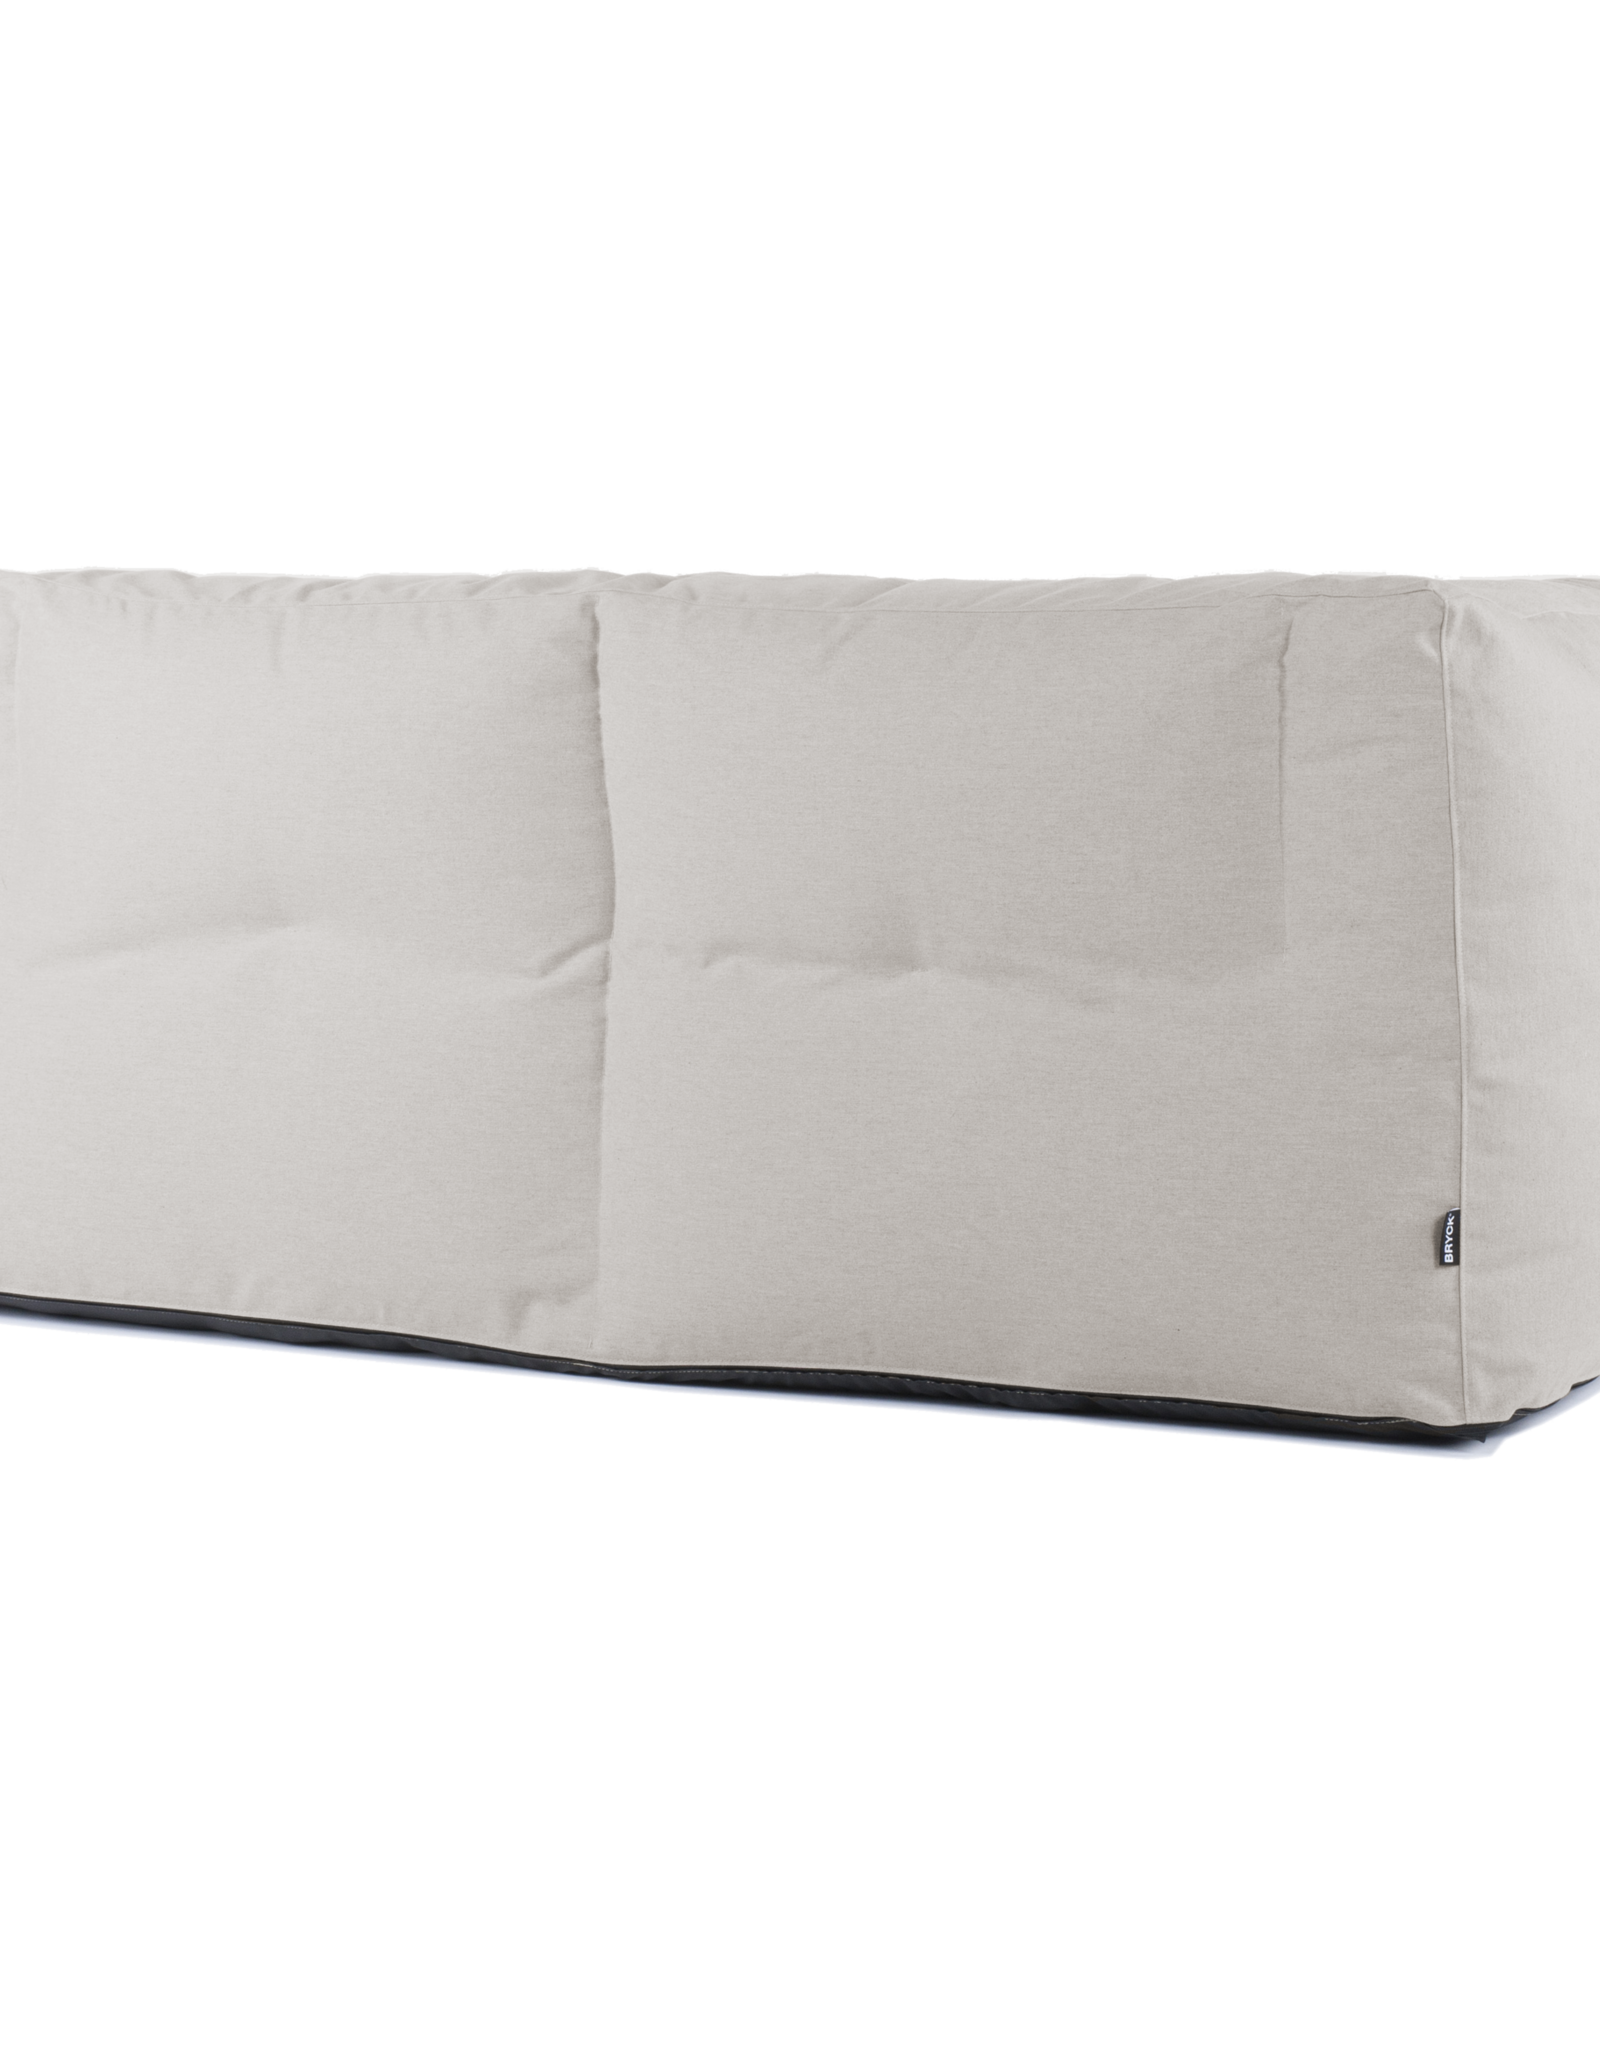 Bryck Bryck - couch 2 zit - Ecollection - light grey